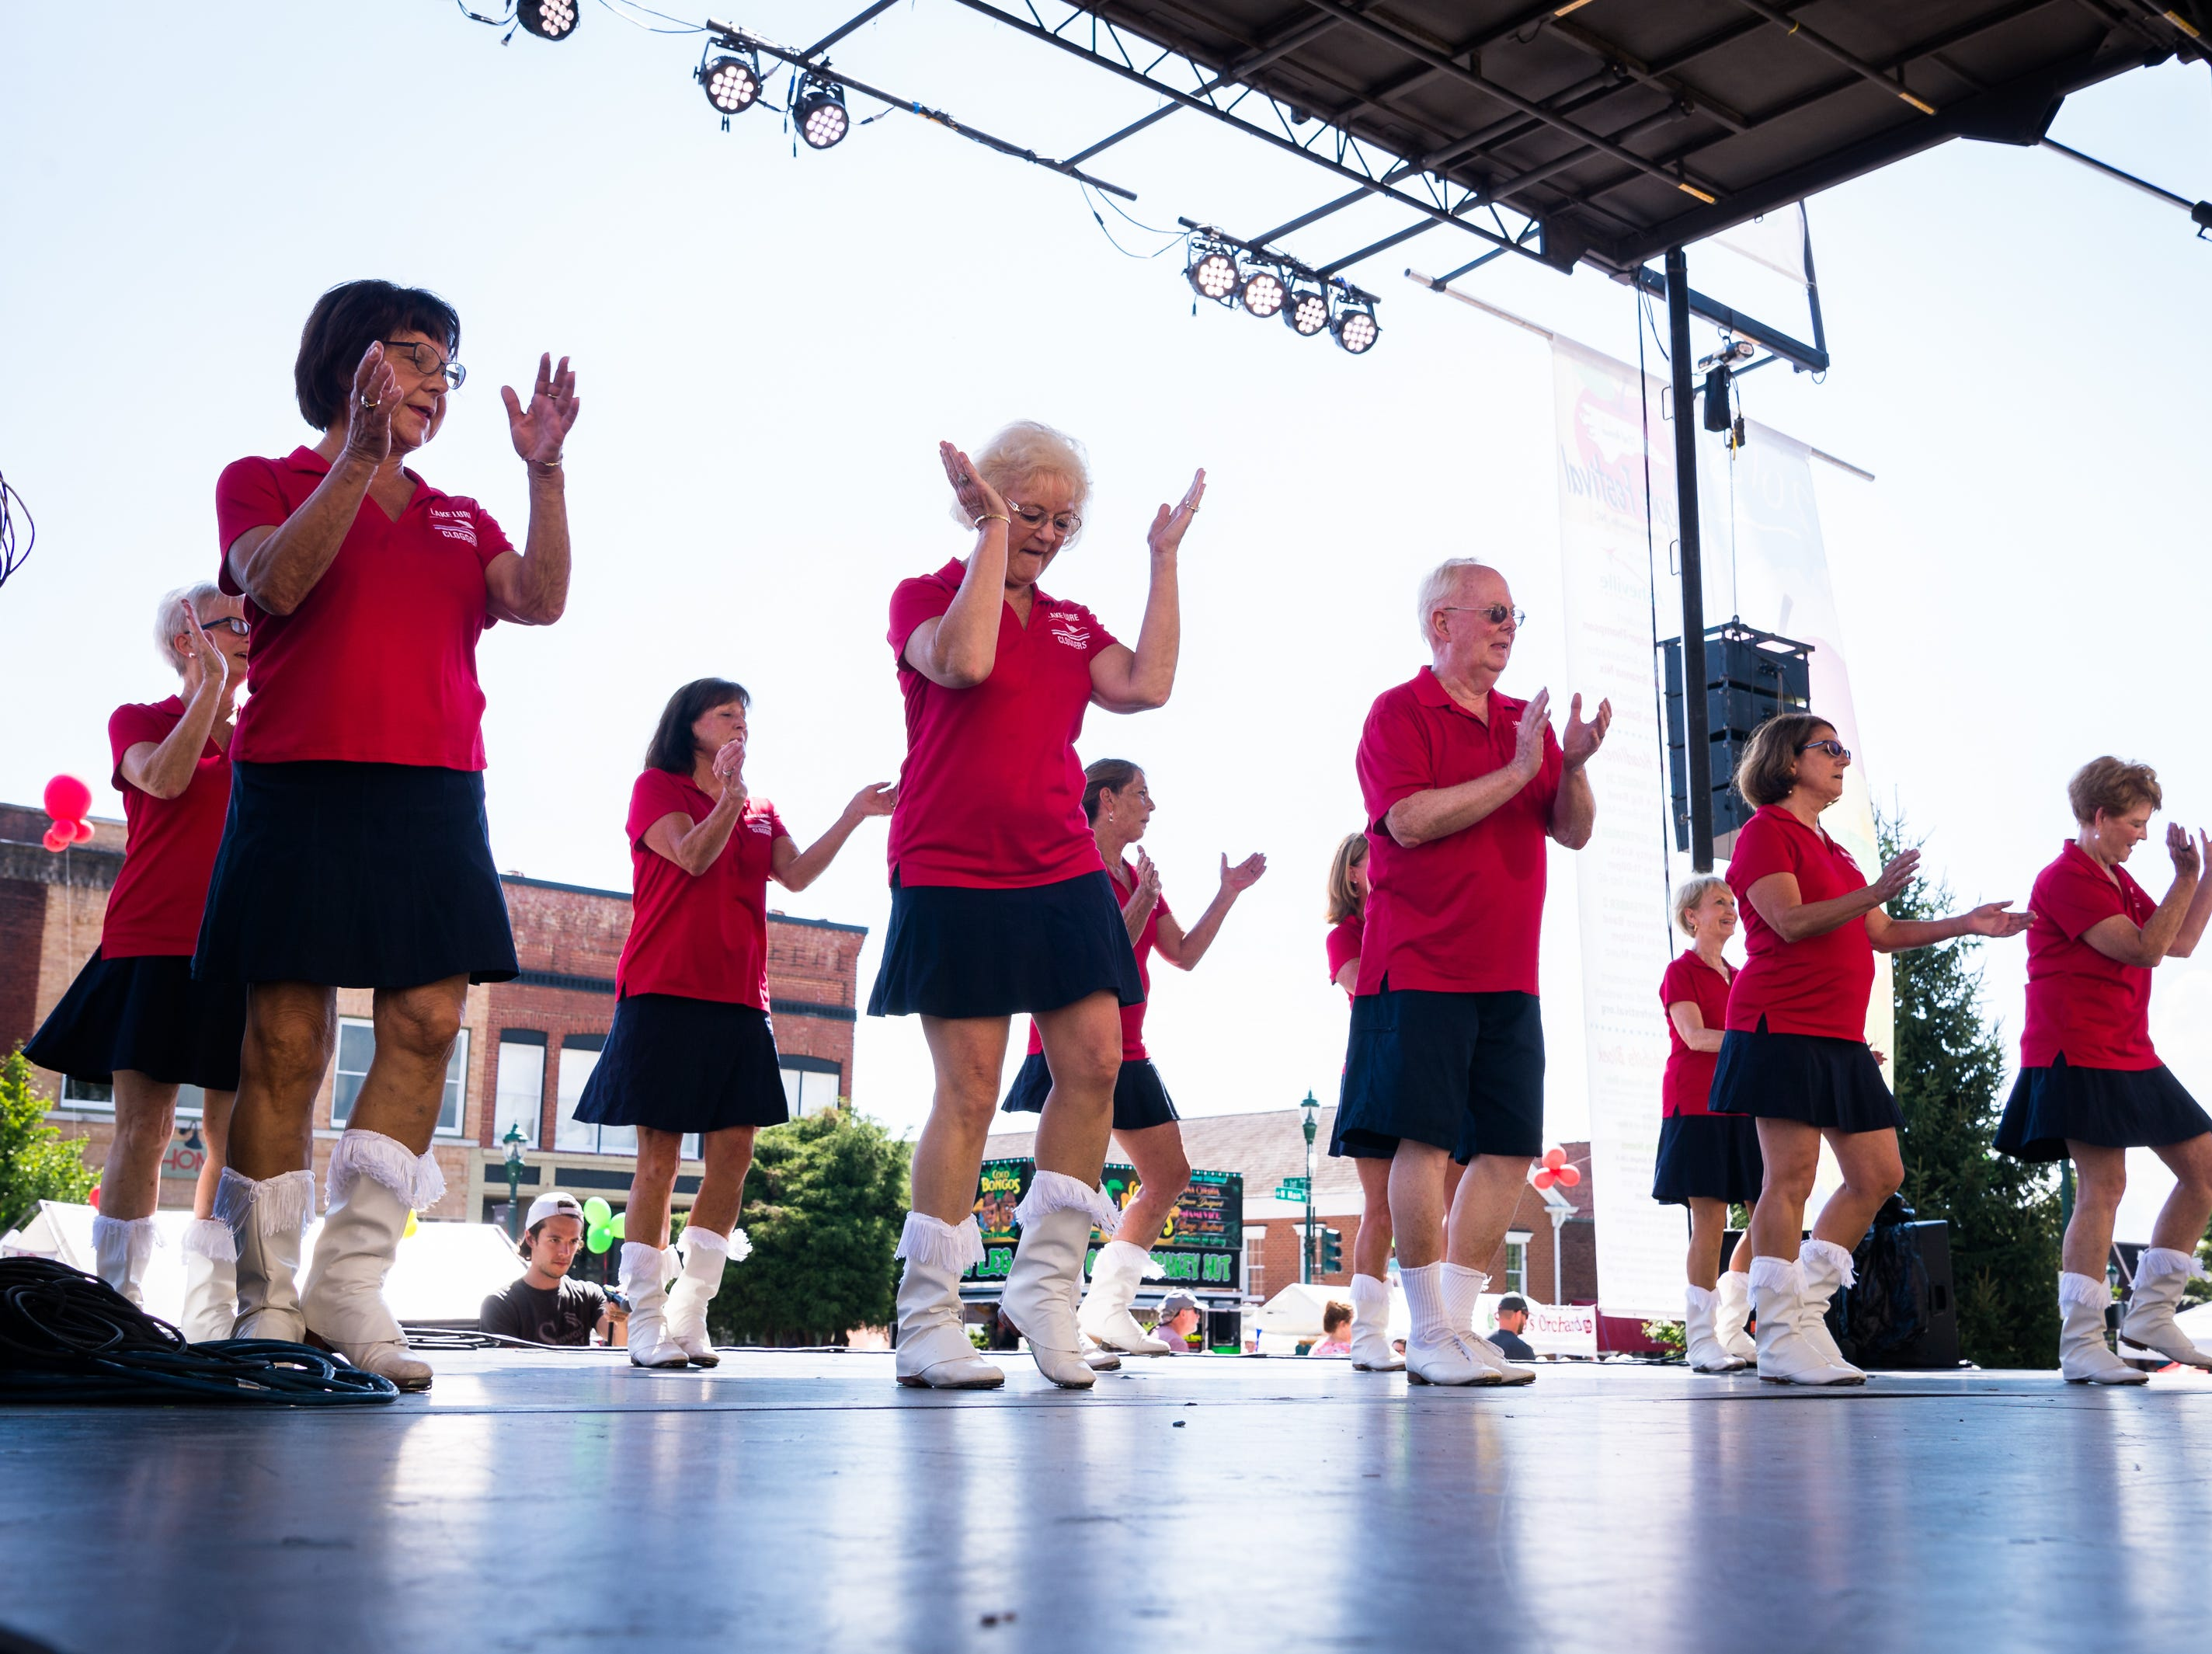 The Lake Lure Cloggers perform on stage in front of Hendersonville's historic court house at the 72nd annual North Carolina Apple Festival Saturday, September 1, 2018.